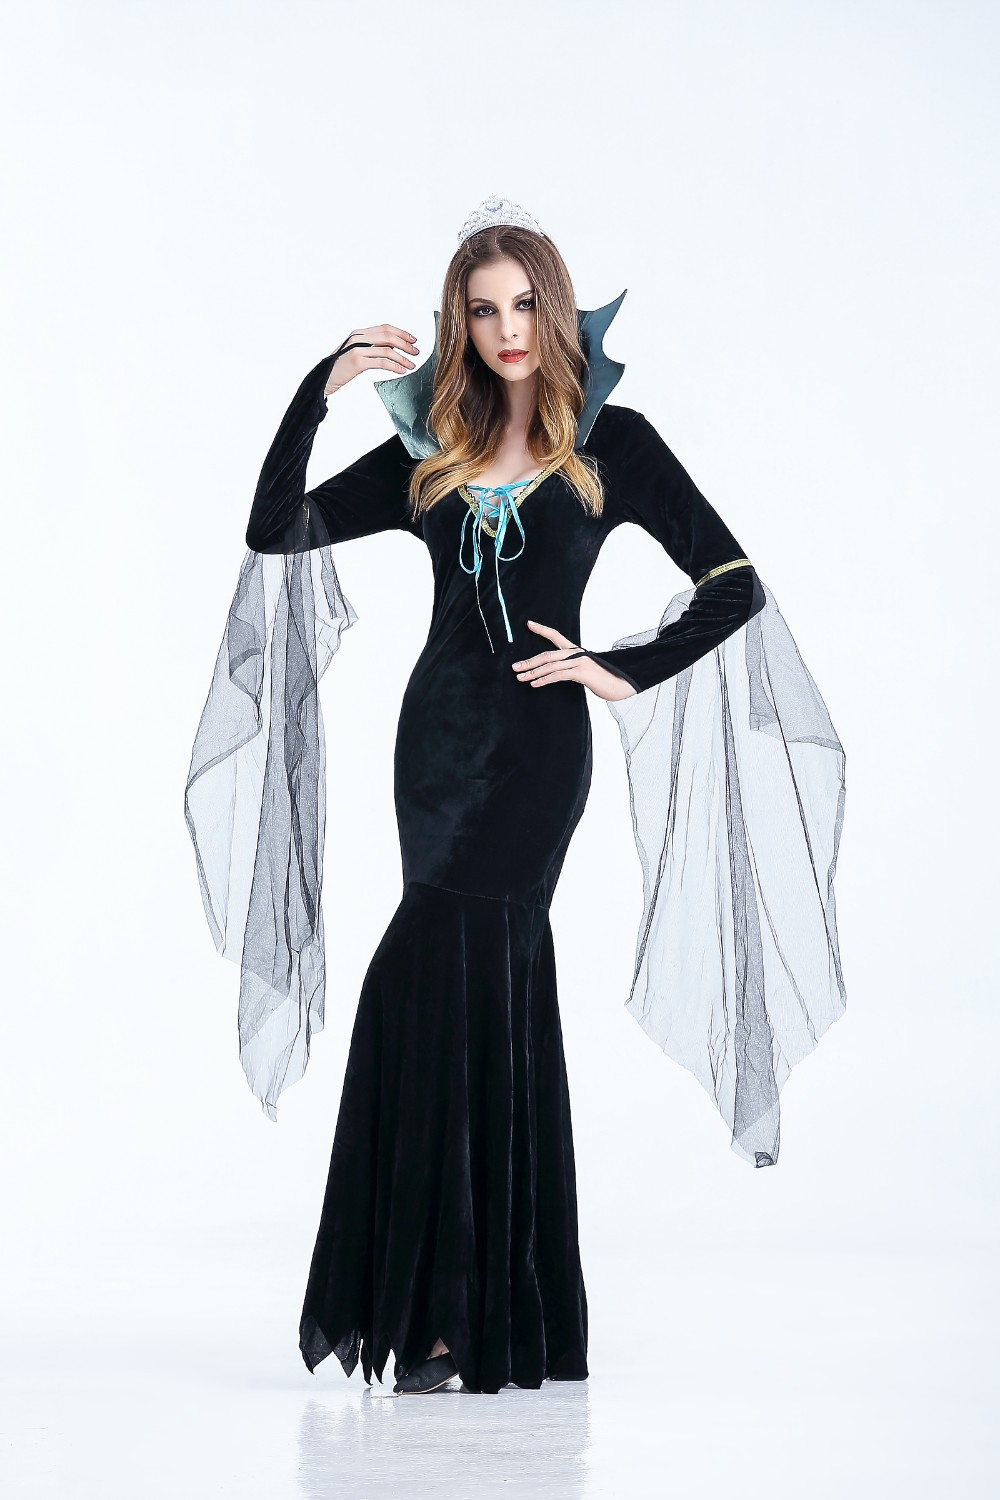 Google themes vampire diaries - Gothic Sexy Witch Vampire Diaries Cosplay Costume Adult Halloween Theme Party Costume Role Play Uniform Temptation